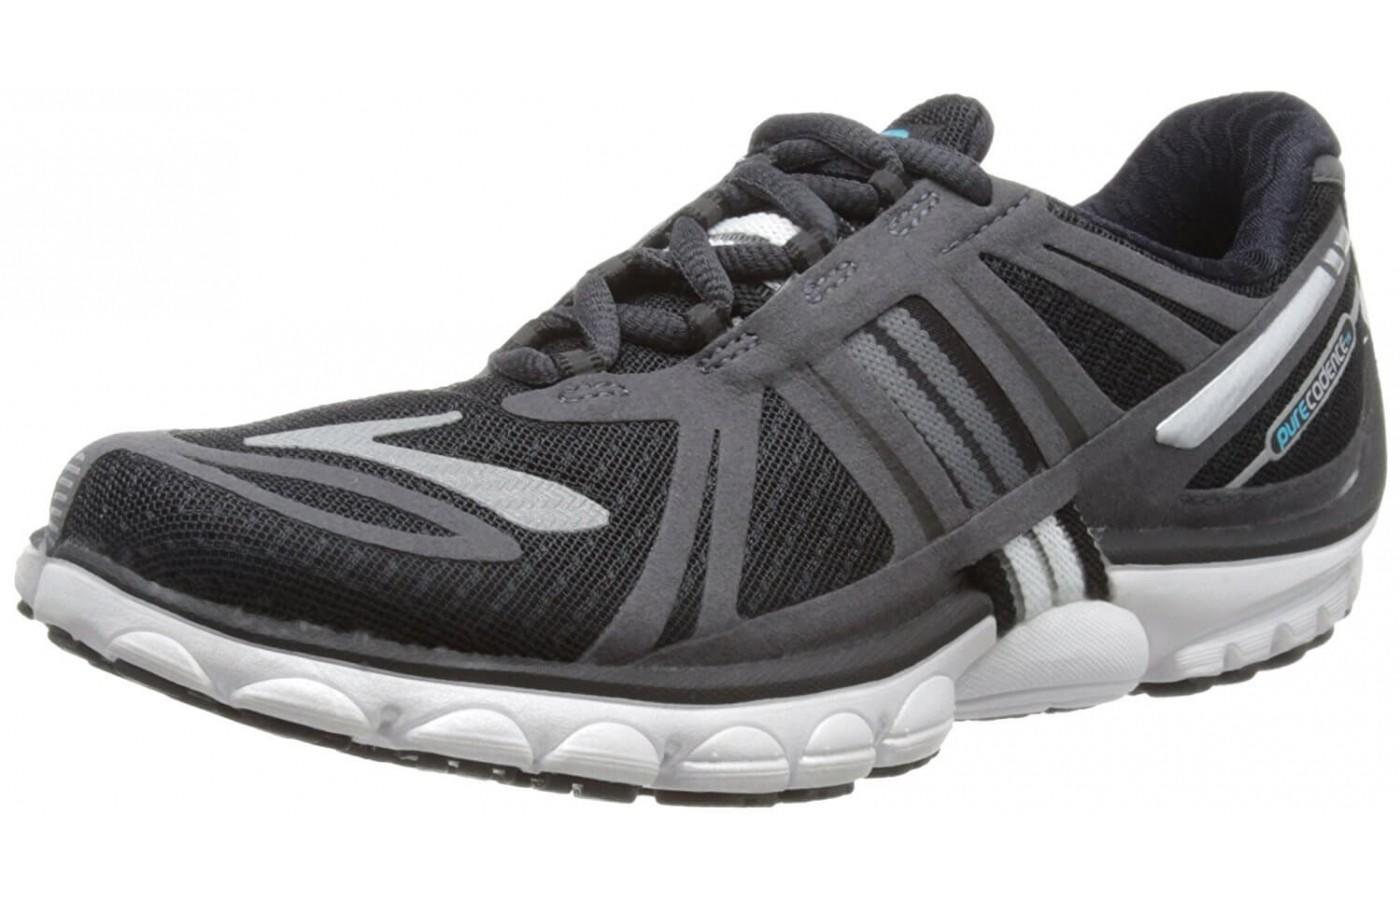 Brooks PureCadence thoroughly reviewed by runners